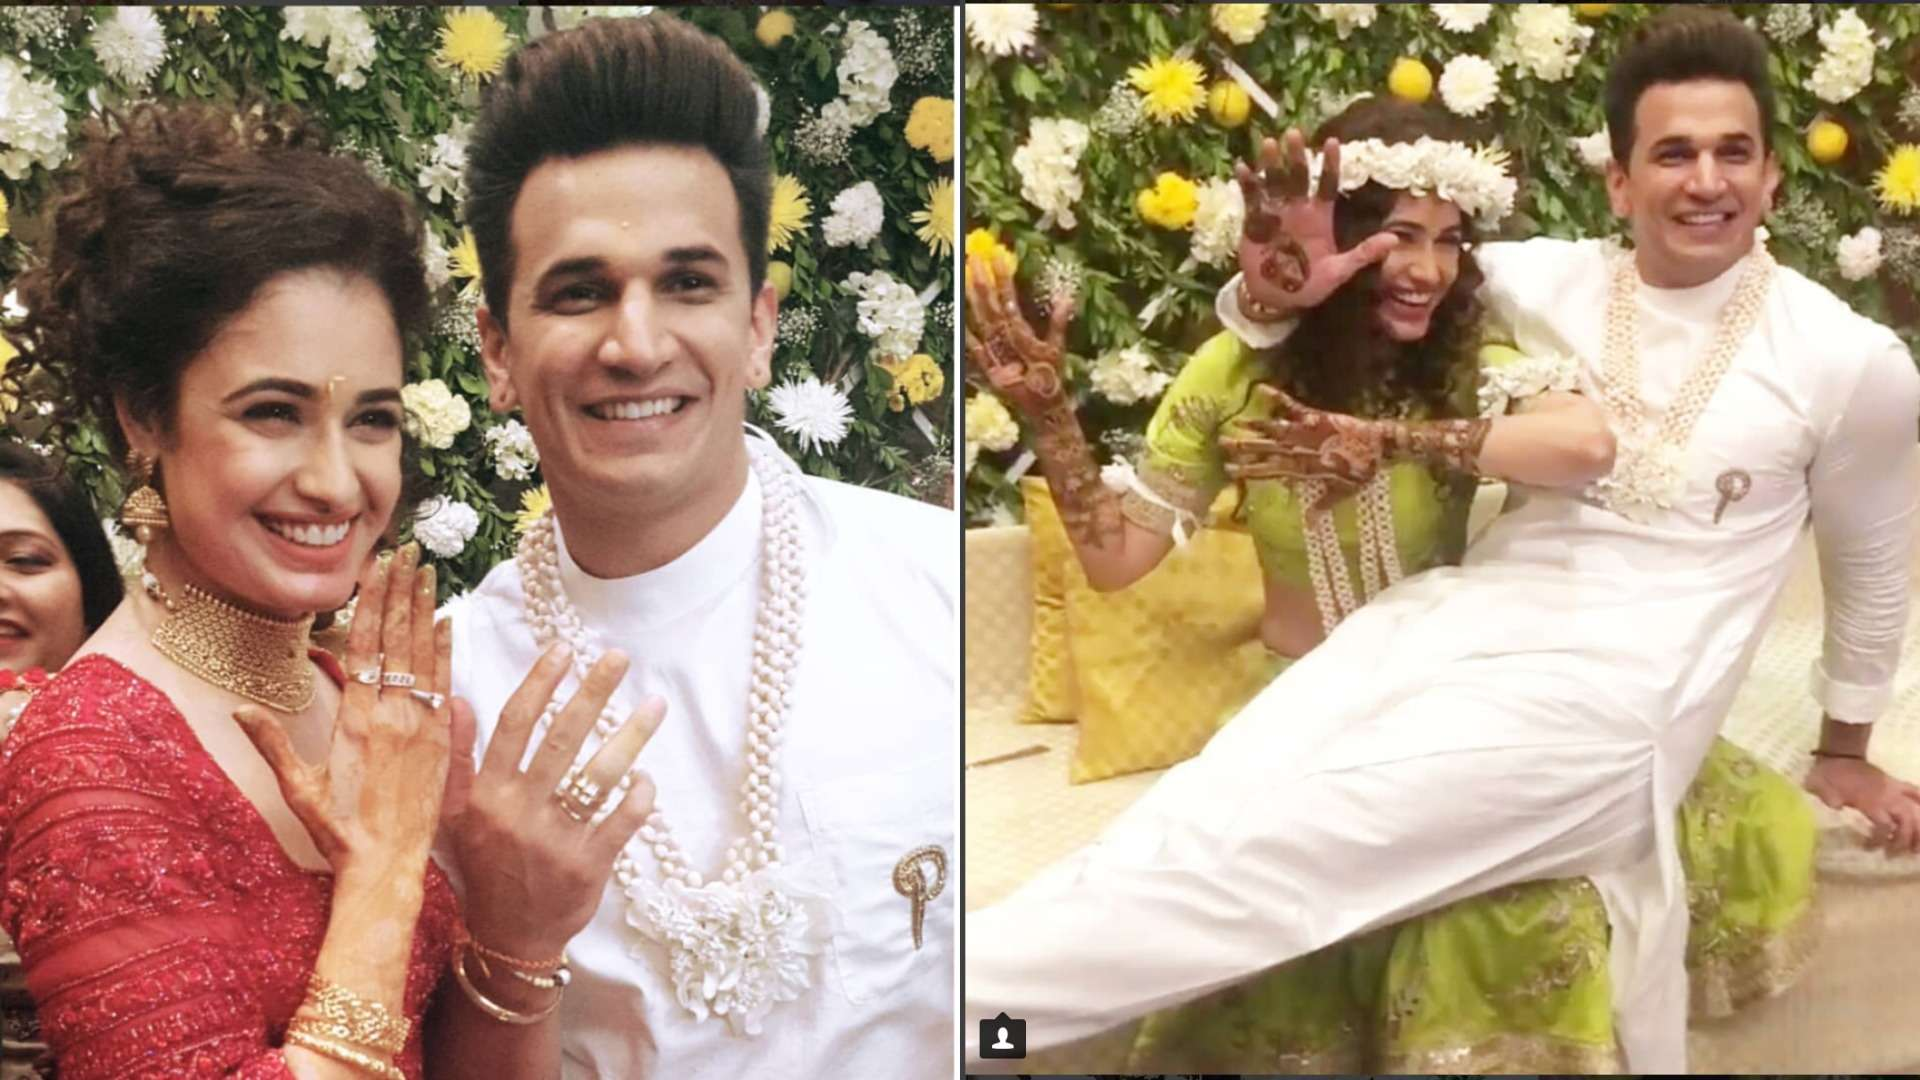 Prince Narula and Yuvika Chaudhary look madly-in-love at their pre-wedding ceremonies